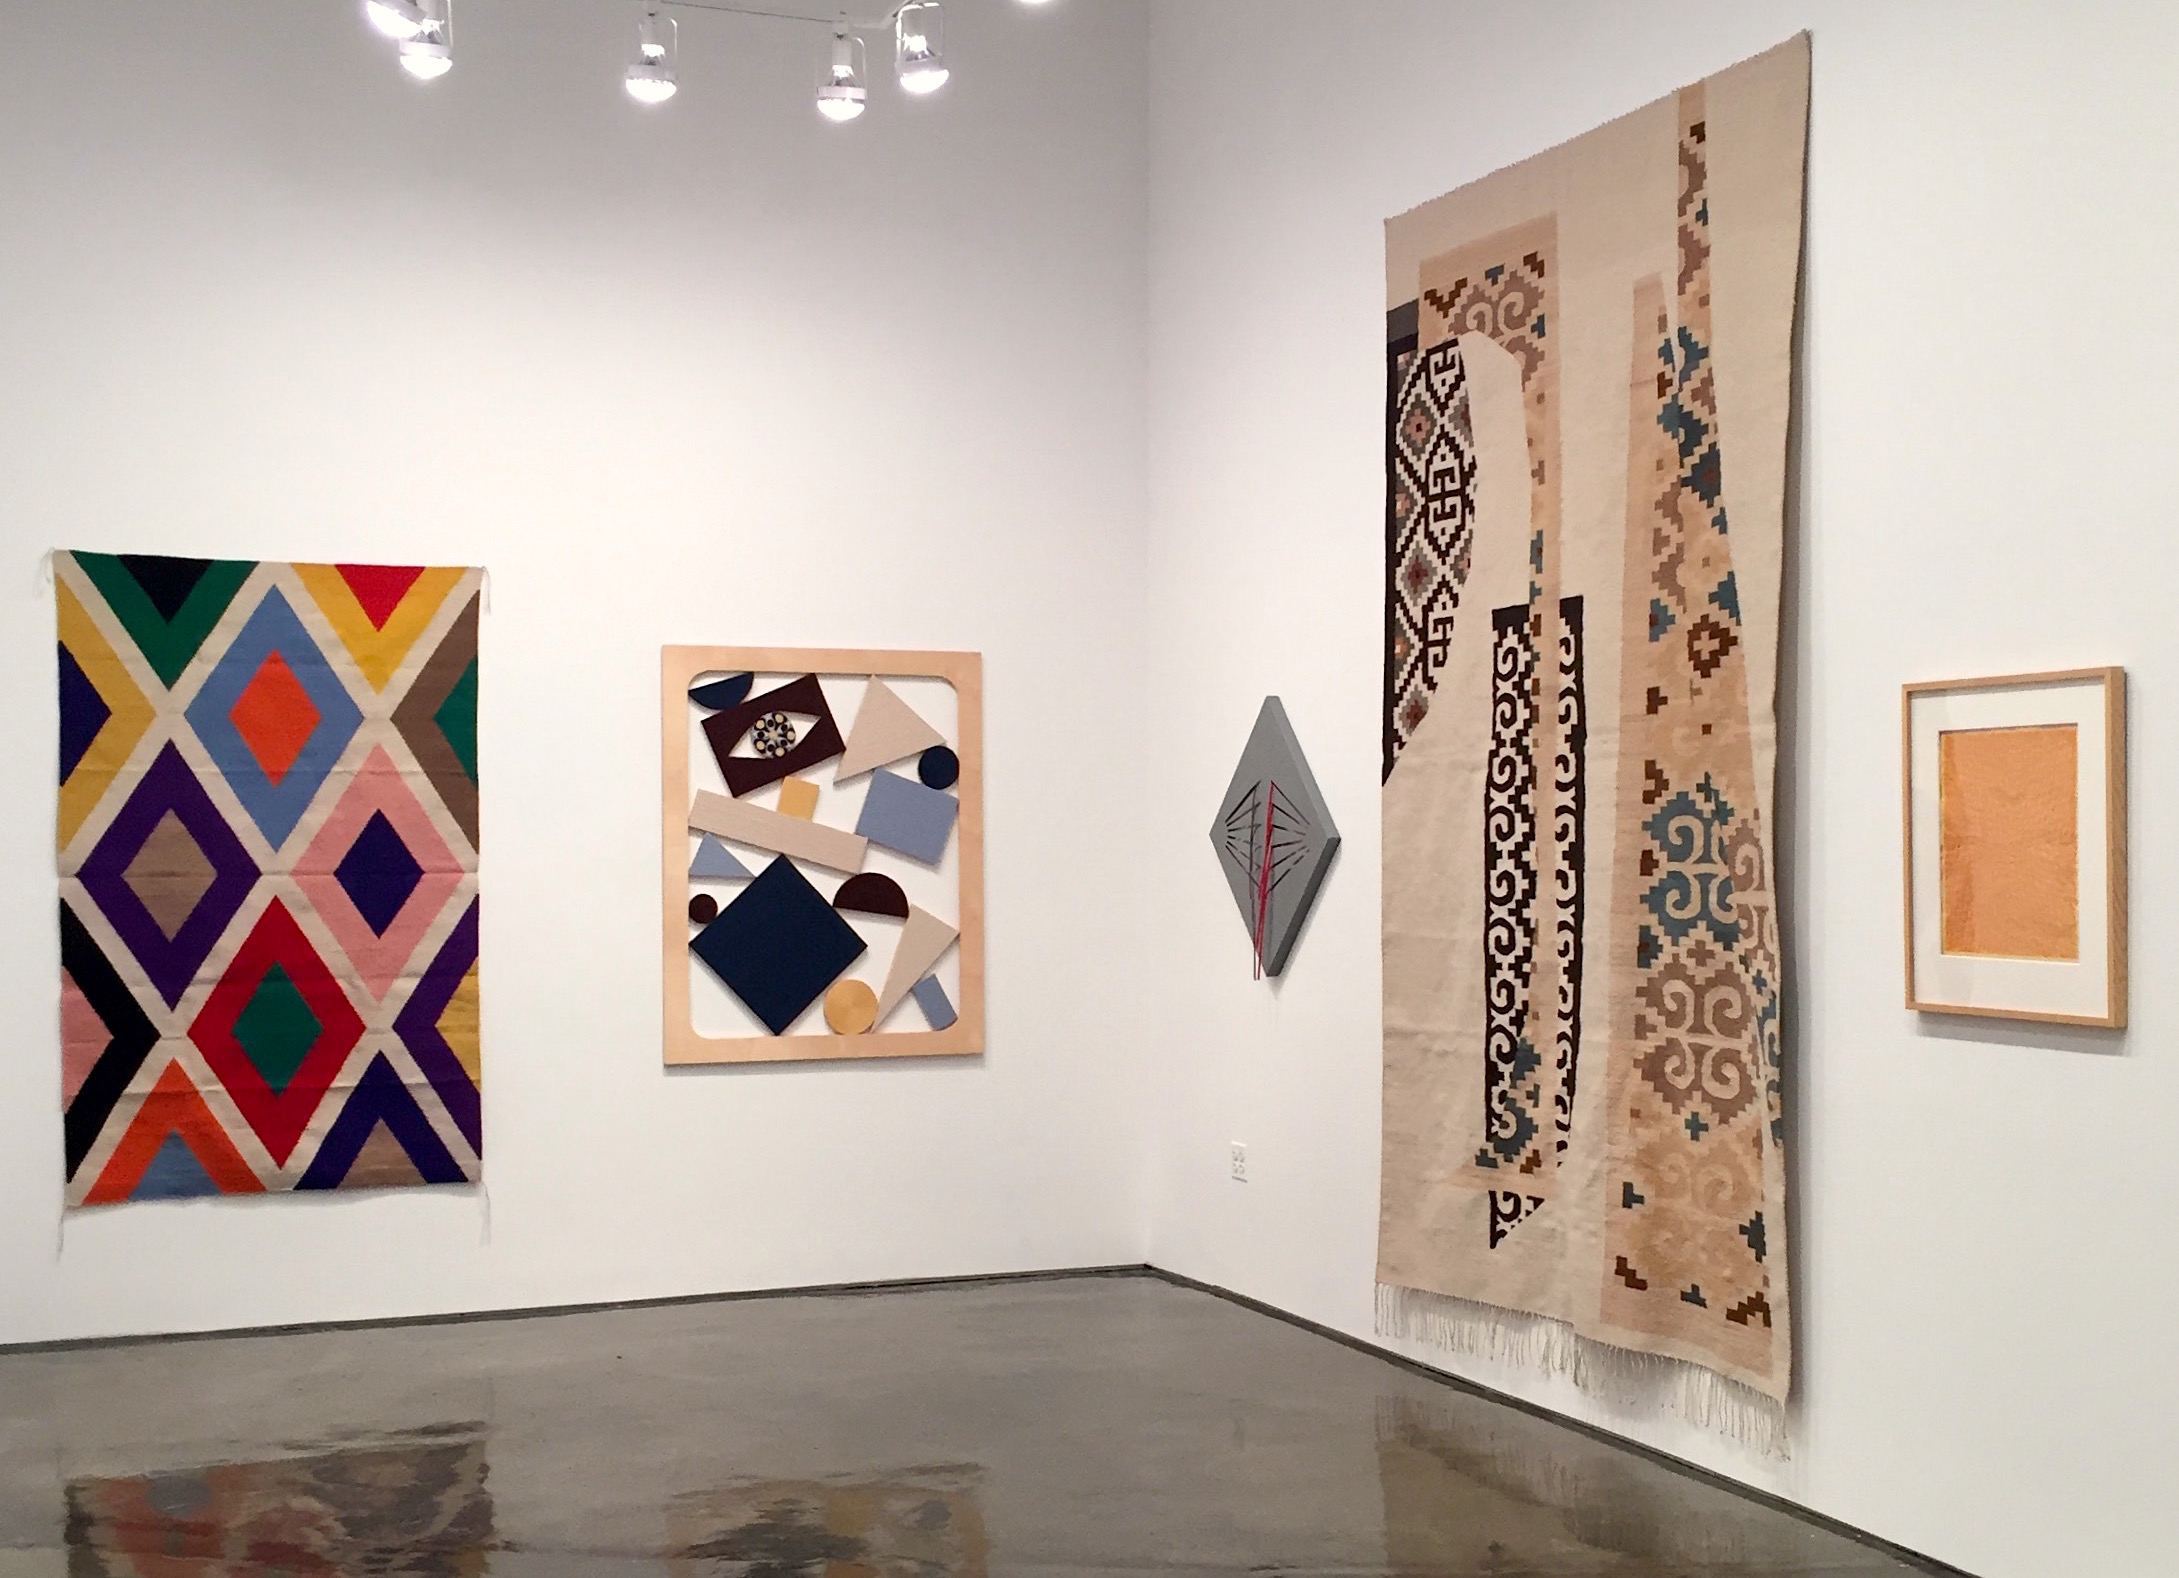 Installation view with Stephen Westfall, Chris Bogia, Linda King Ferguson, Emi Winter and Anni Albers.